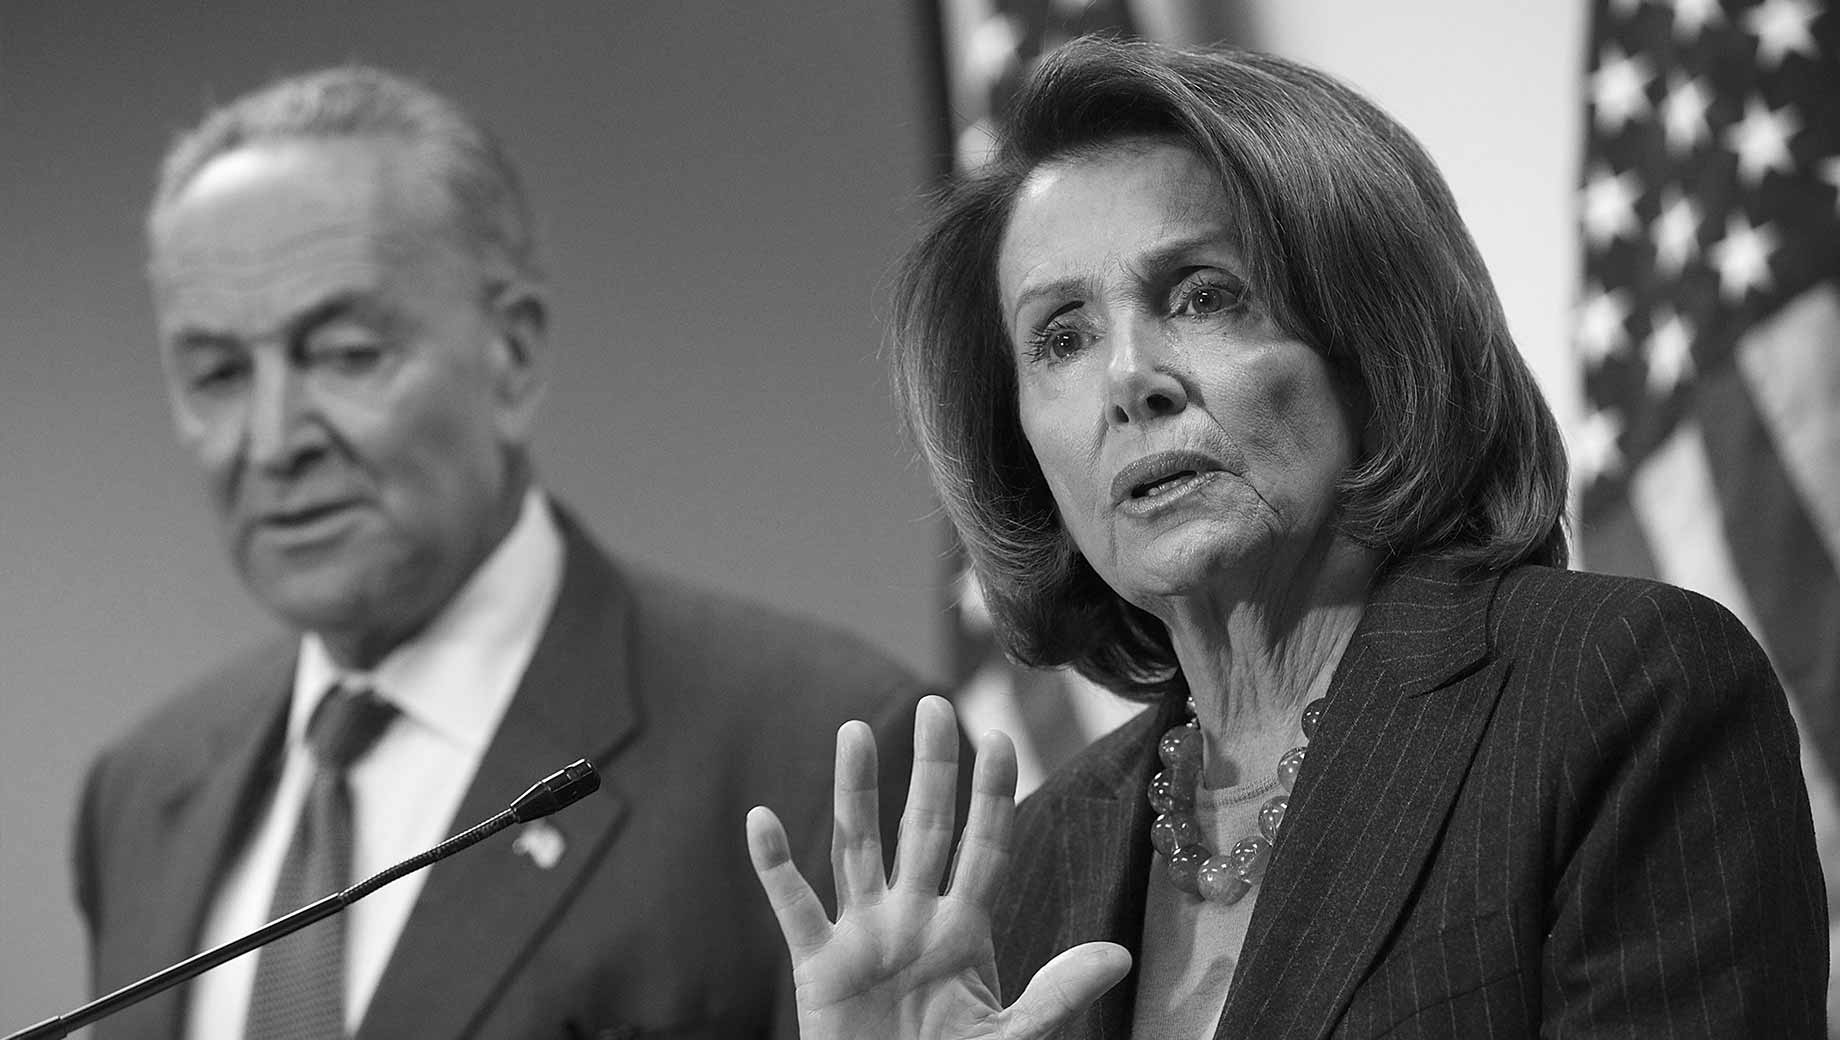 U.S. Democrats Favor Someone Other Than Pelosi as Speaker